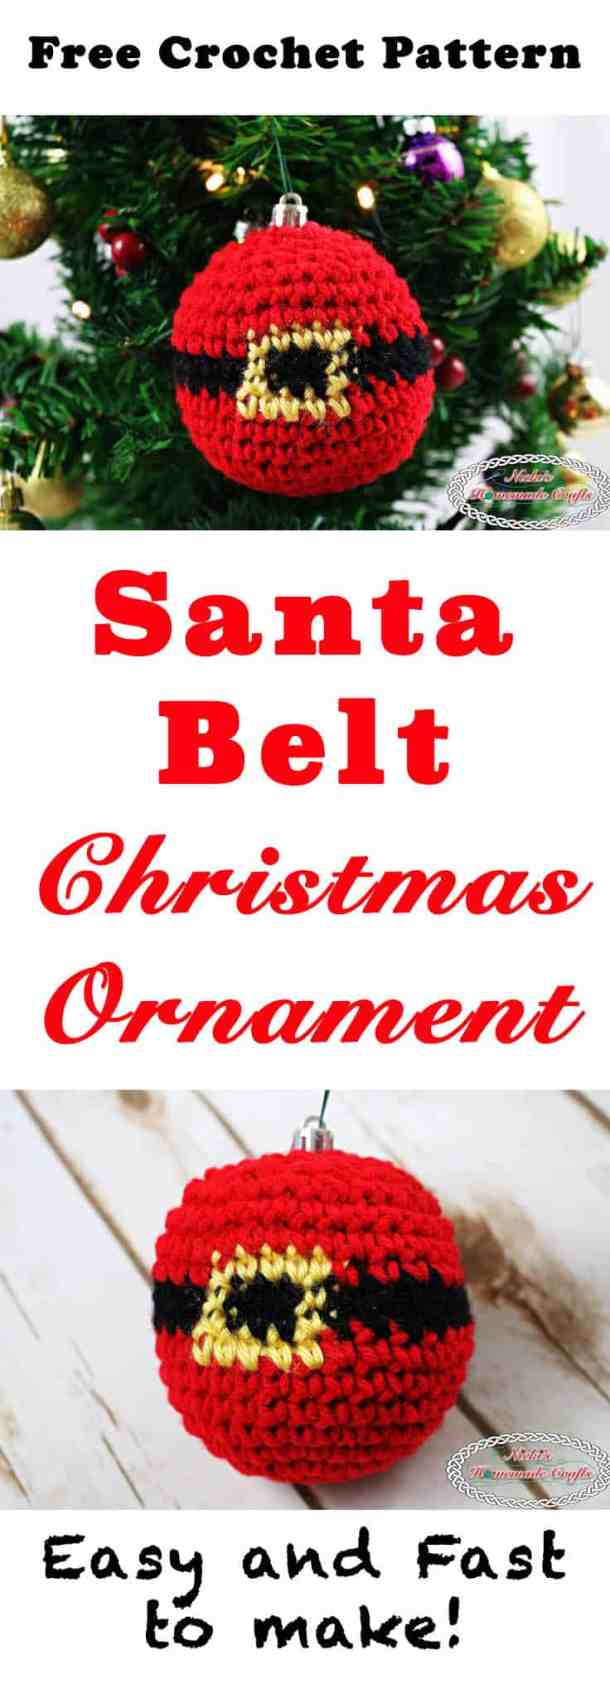 Santa Belt Christmas Ornament -filled crocheted ornament showing the belly of the Santa having the black belt with gold buckle - Free Crochet Pattern by Nicki's Homemade Crafts #crochet #ornament #christmas #winter #tree #free #crochet #pattern #belt